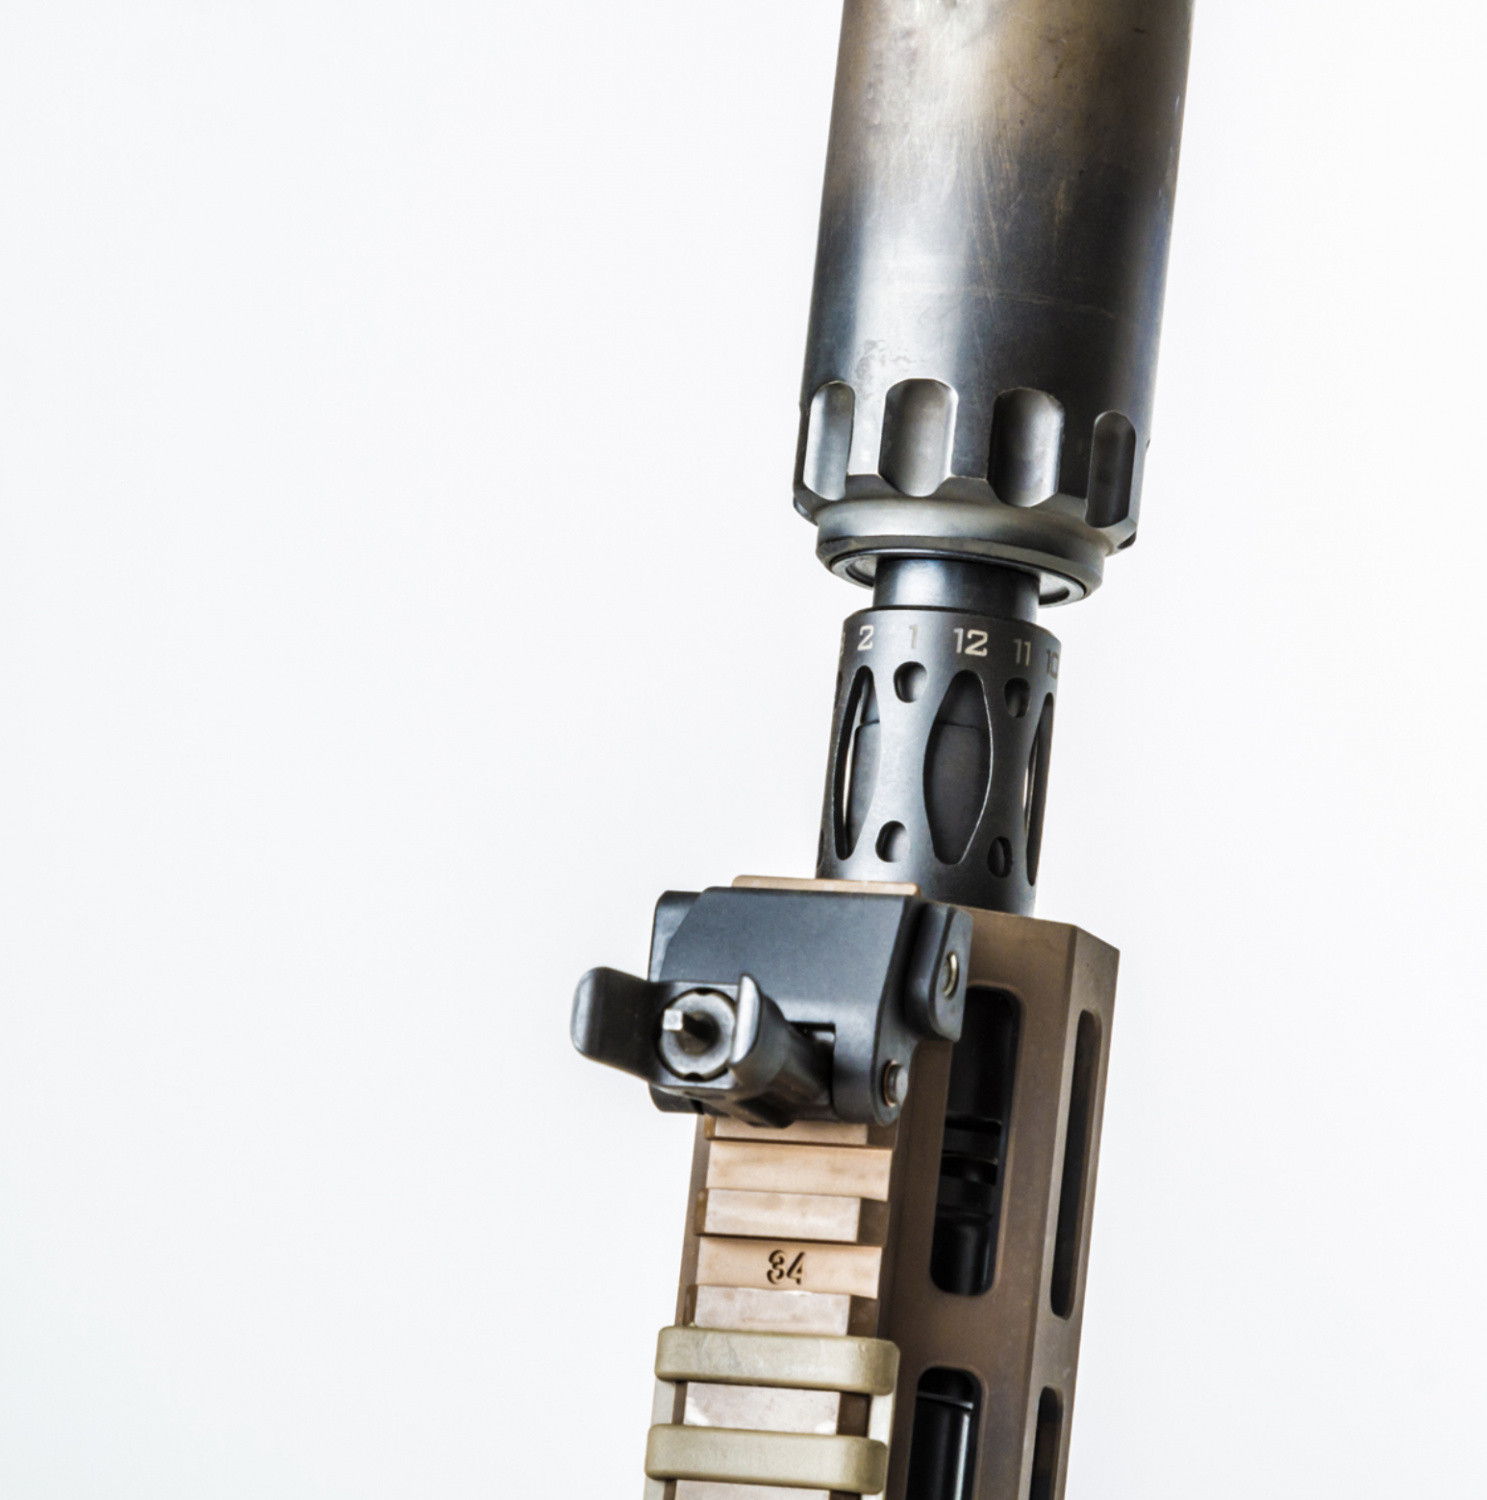 Over-Gassed? Take A Look At RIFLESPEED AR-15 Gas Controls